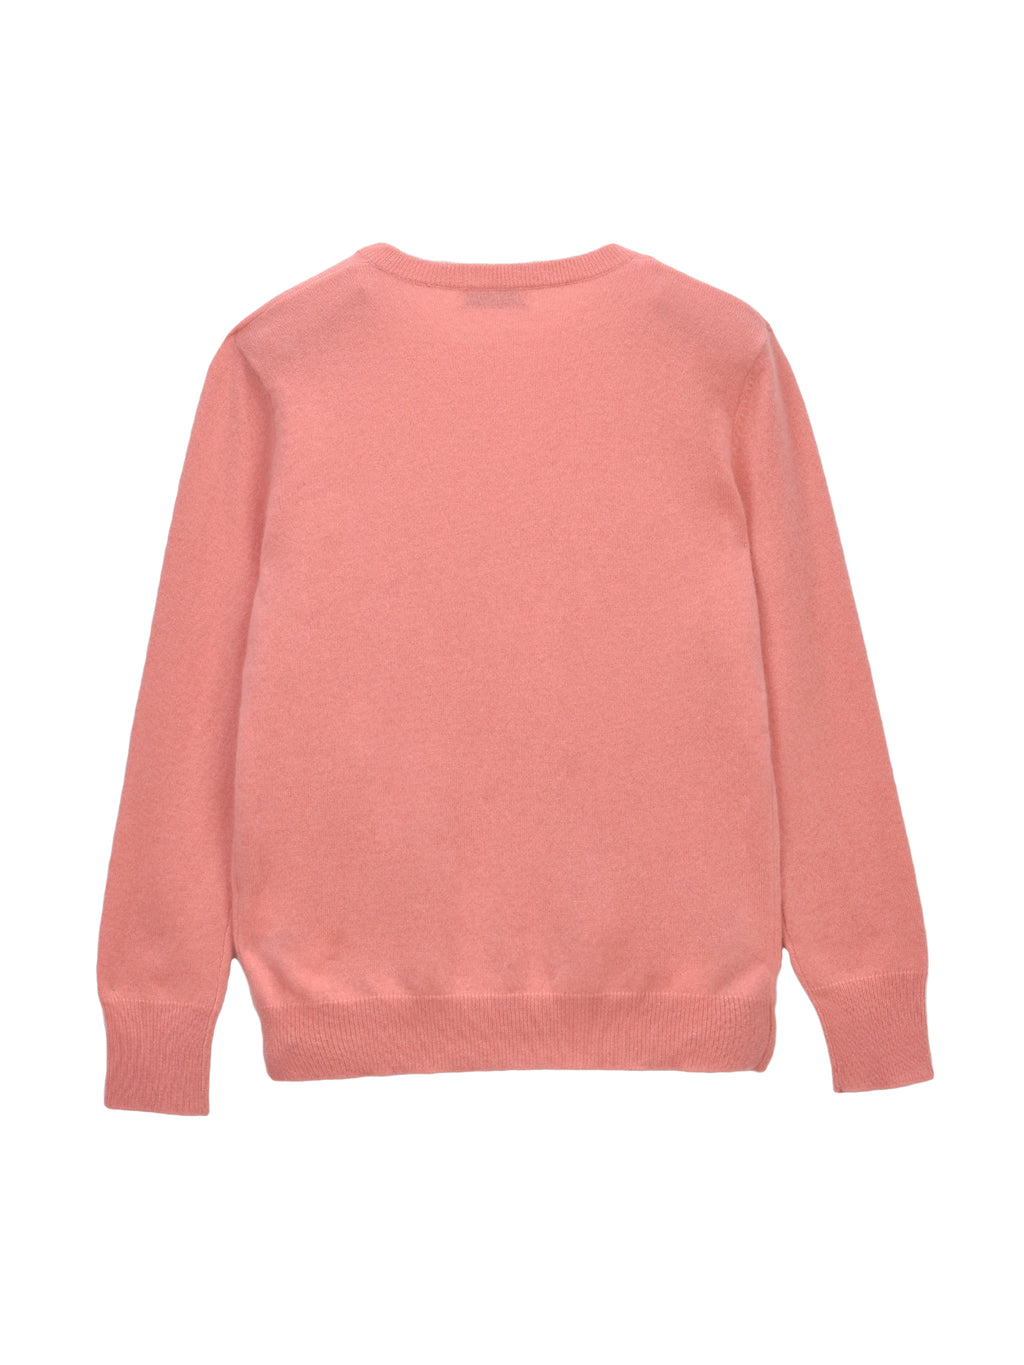 Classic Crew Neck Sweater_Dust Pink